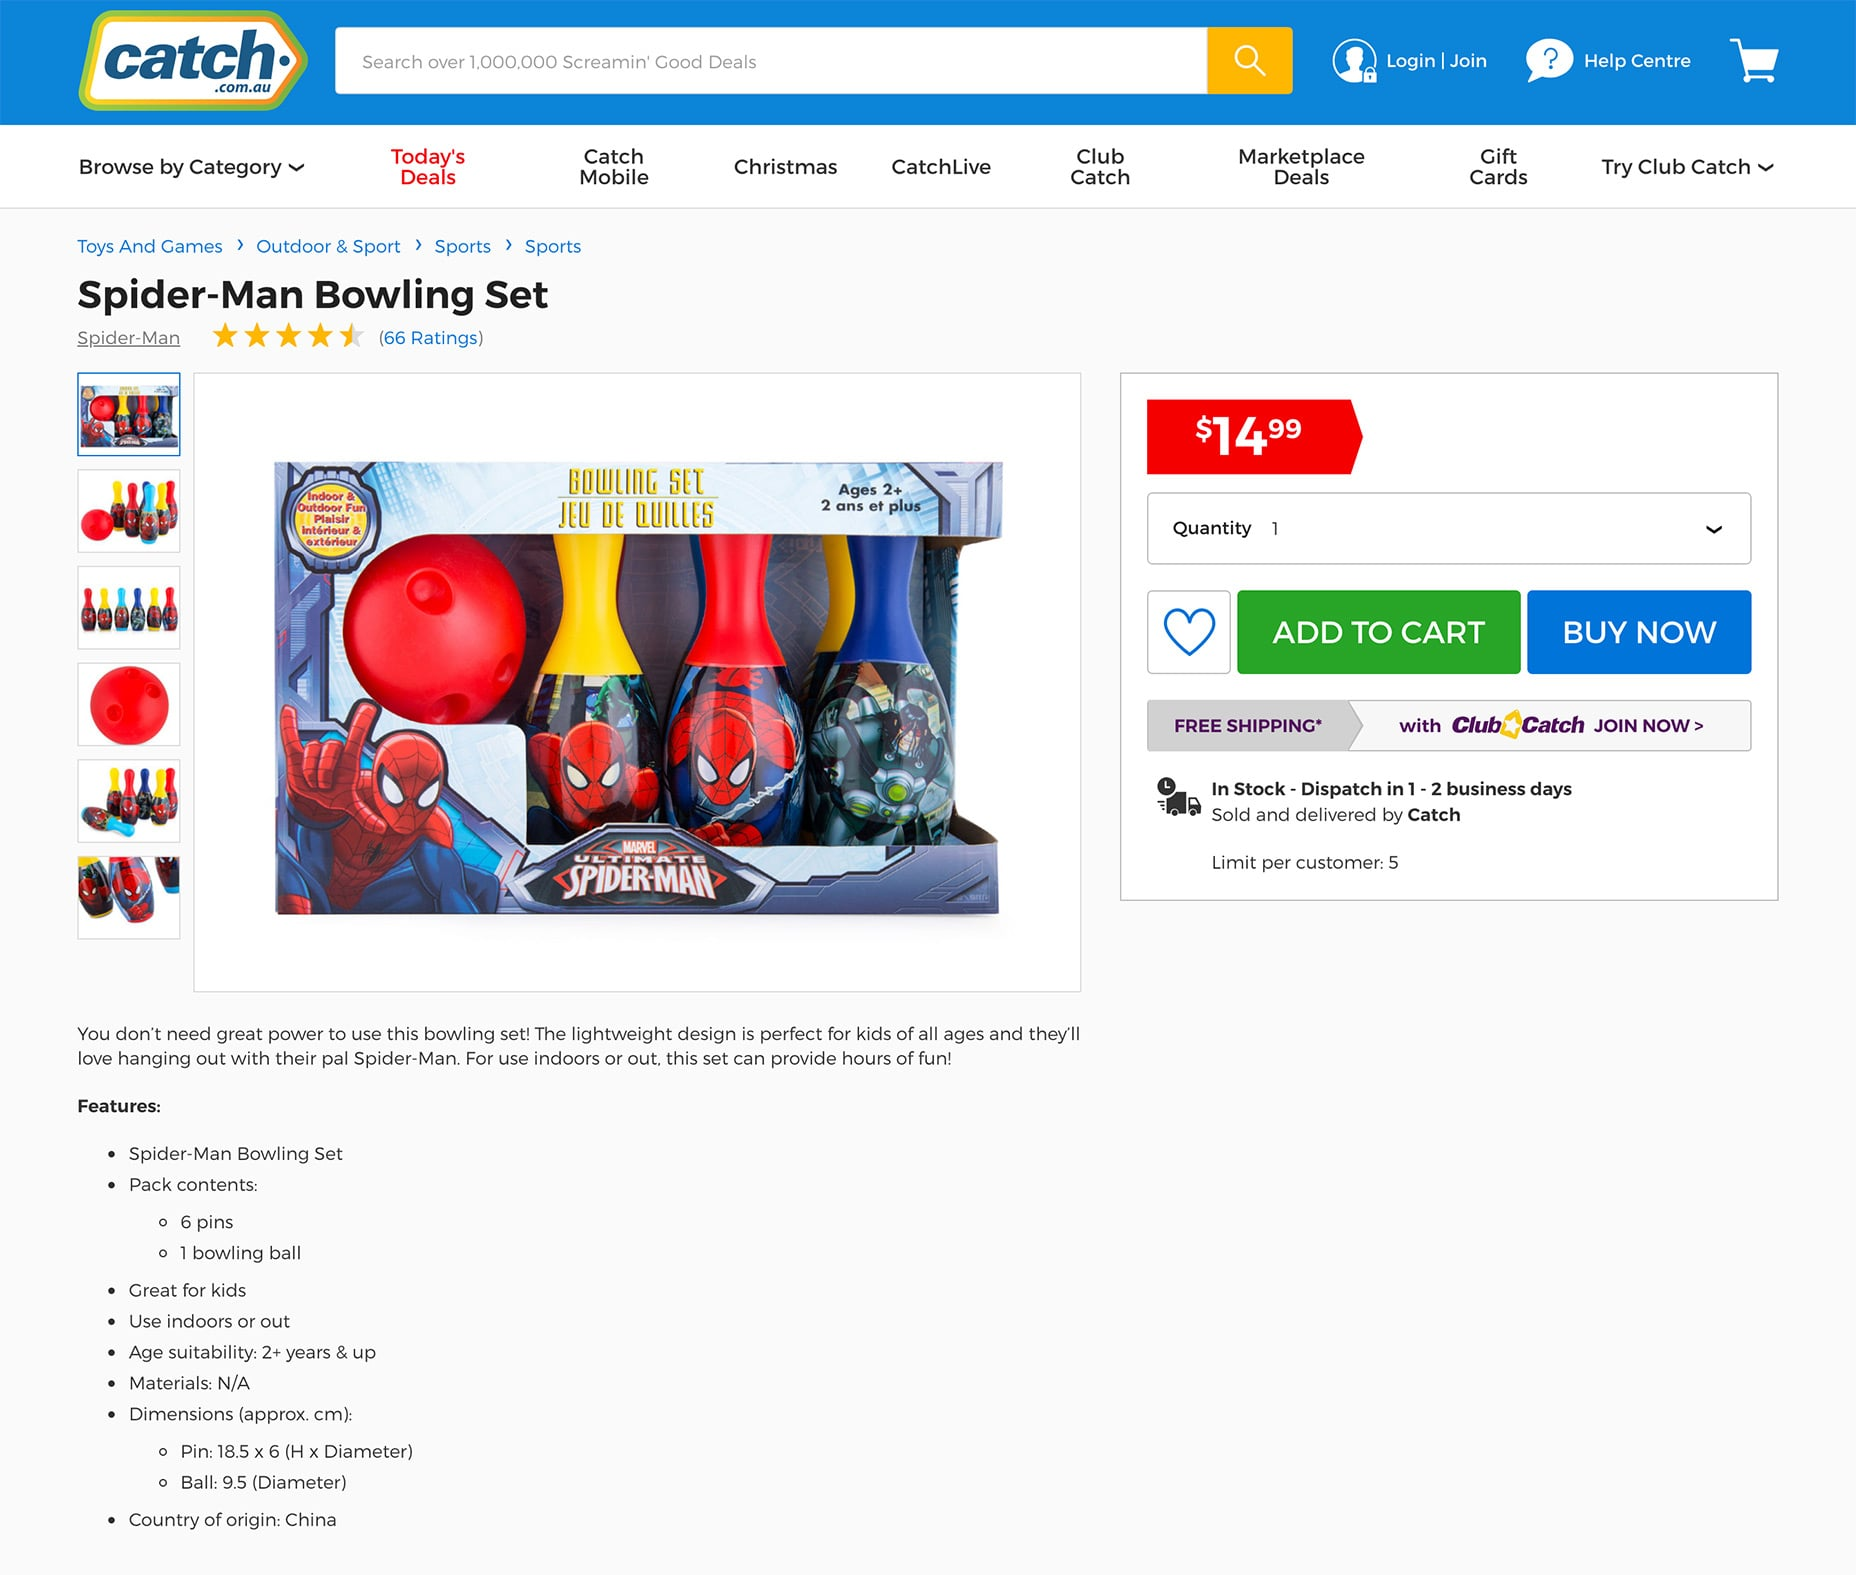 Catch Spider-Man Bowling Set Product Page